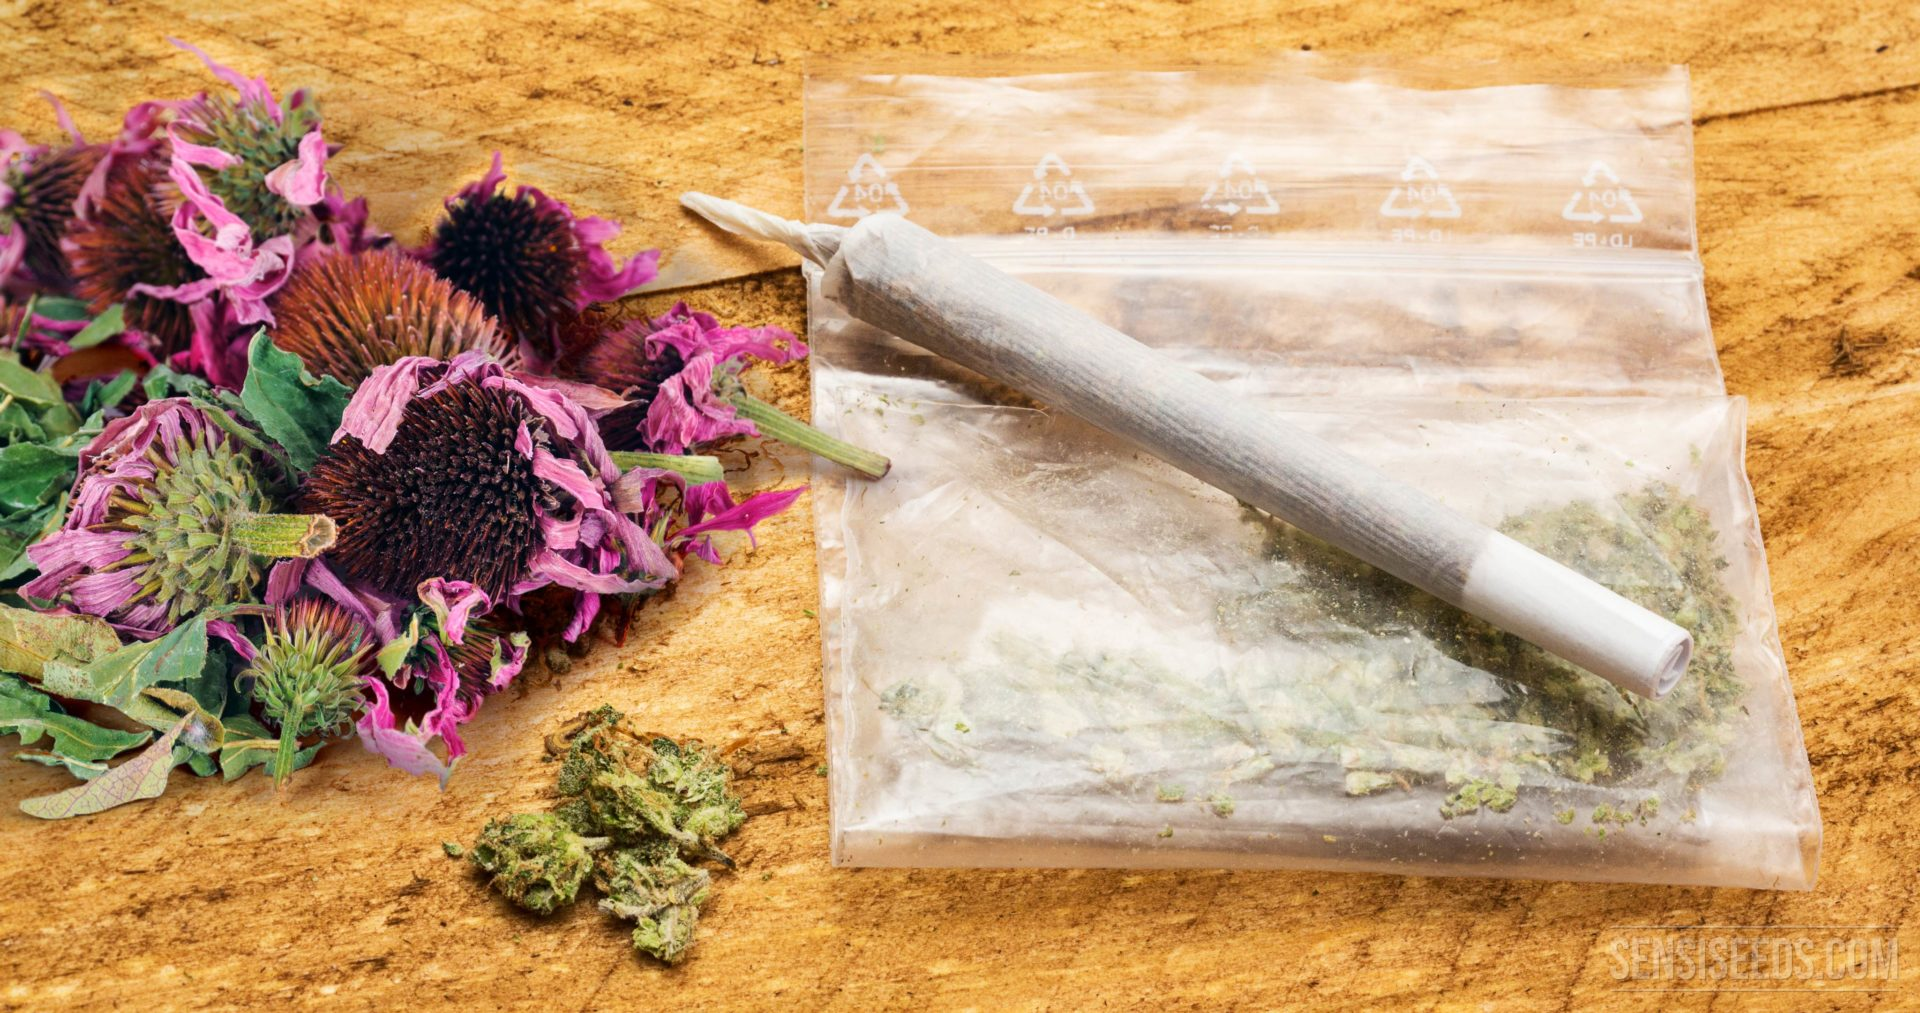 10 alternatives to tobacco to mix with cannabis